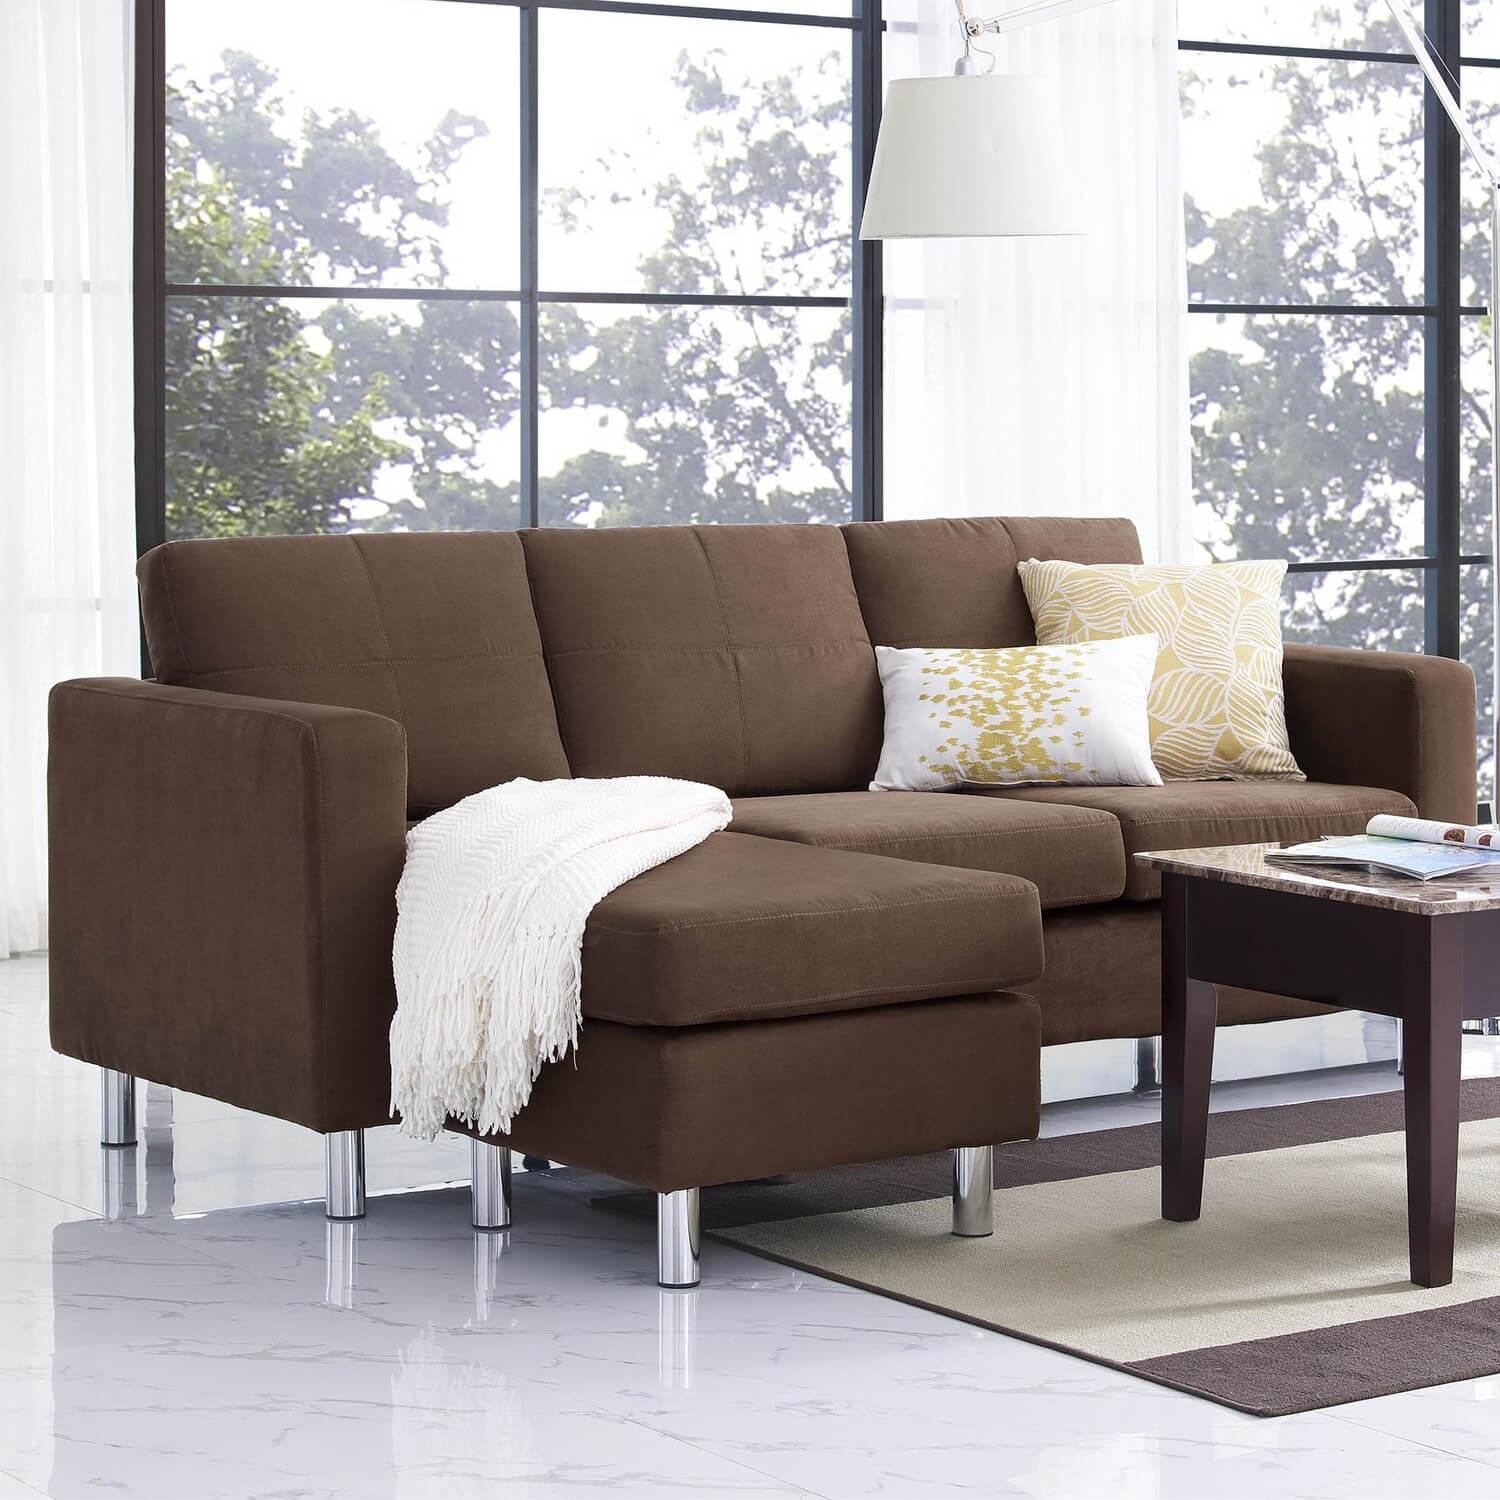 Furniture & Sofa: Best Sectional For Small Spaces | Small Space In Sectional Sofas In Small Spaces (Image 11 of 20)